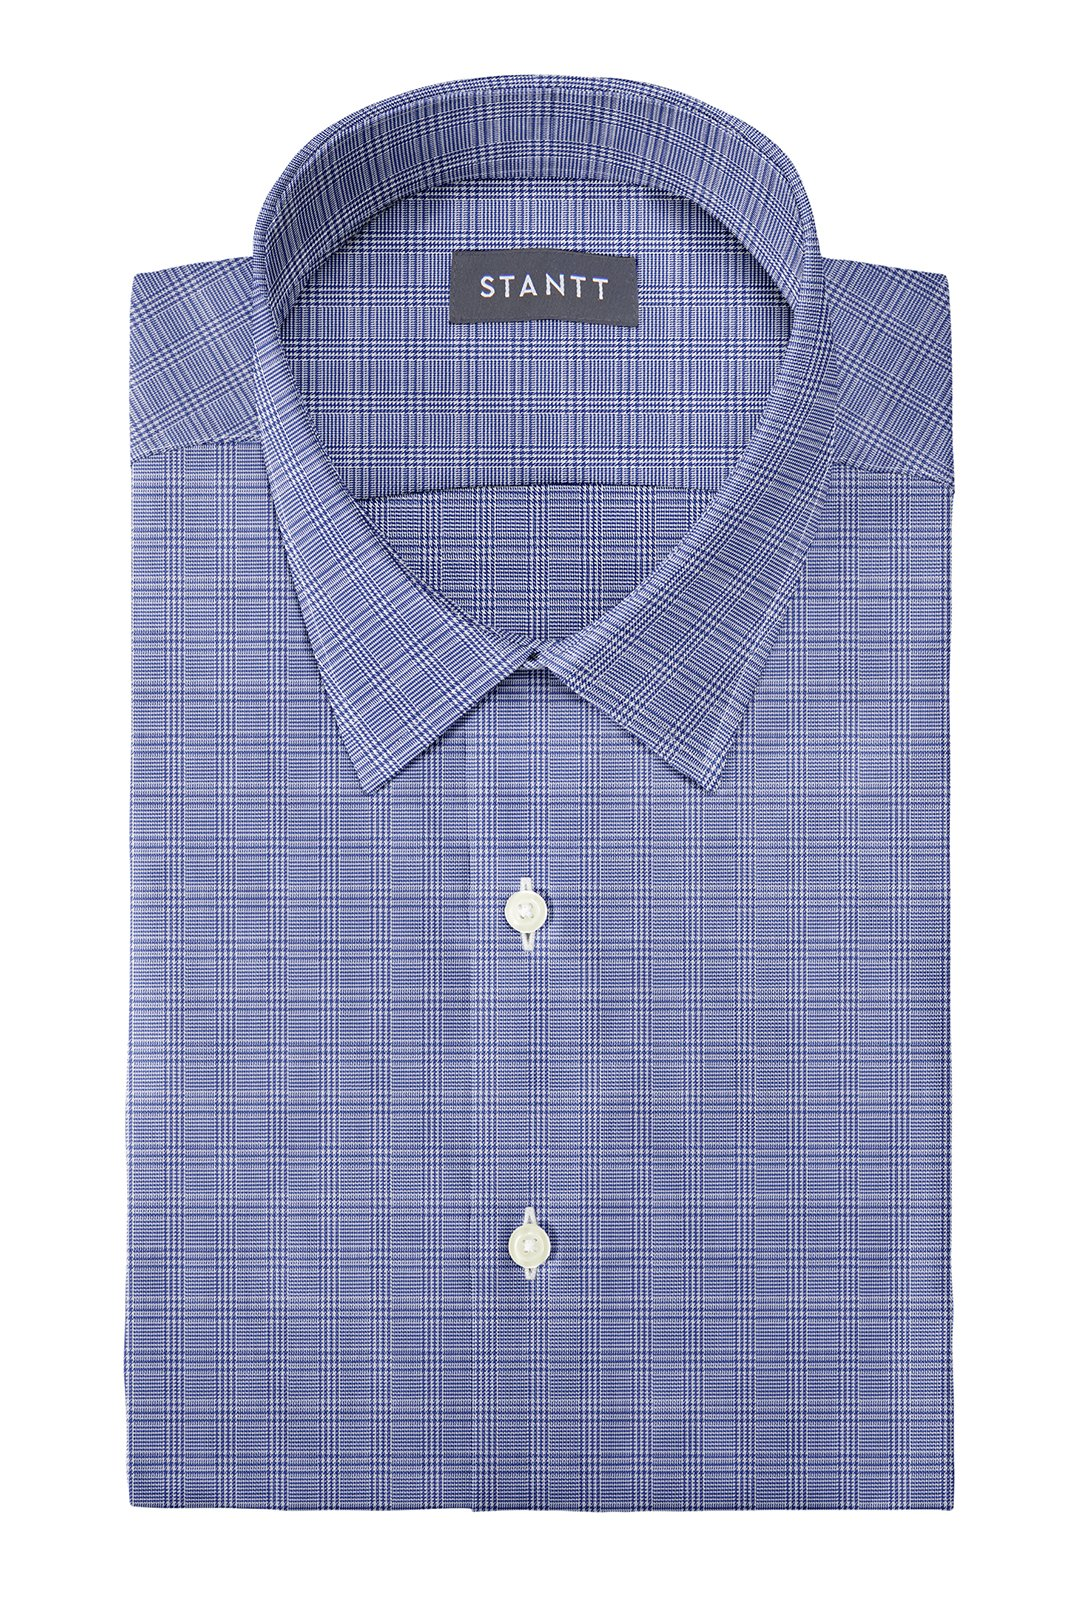 Wrinkle-Resistant Navy Prince of Wales Check: Semi-Spread Collar, French Cuff